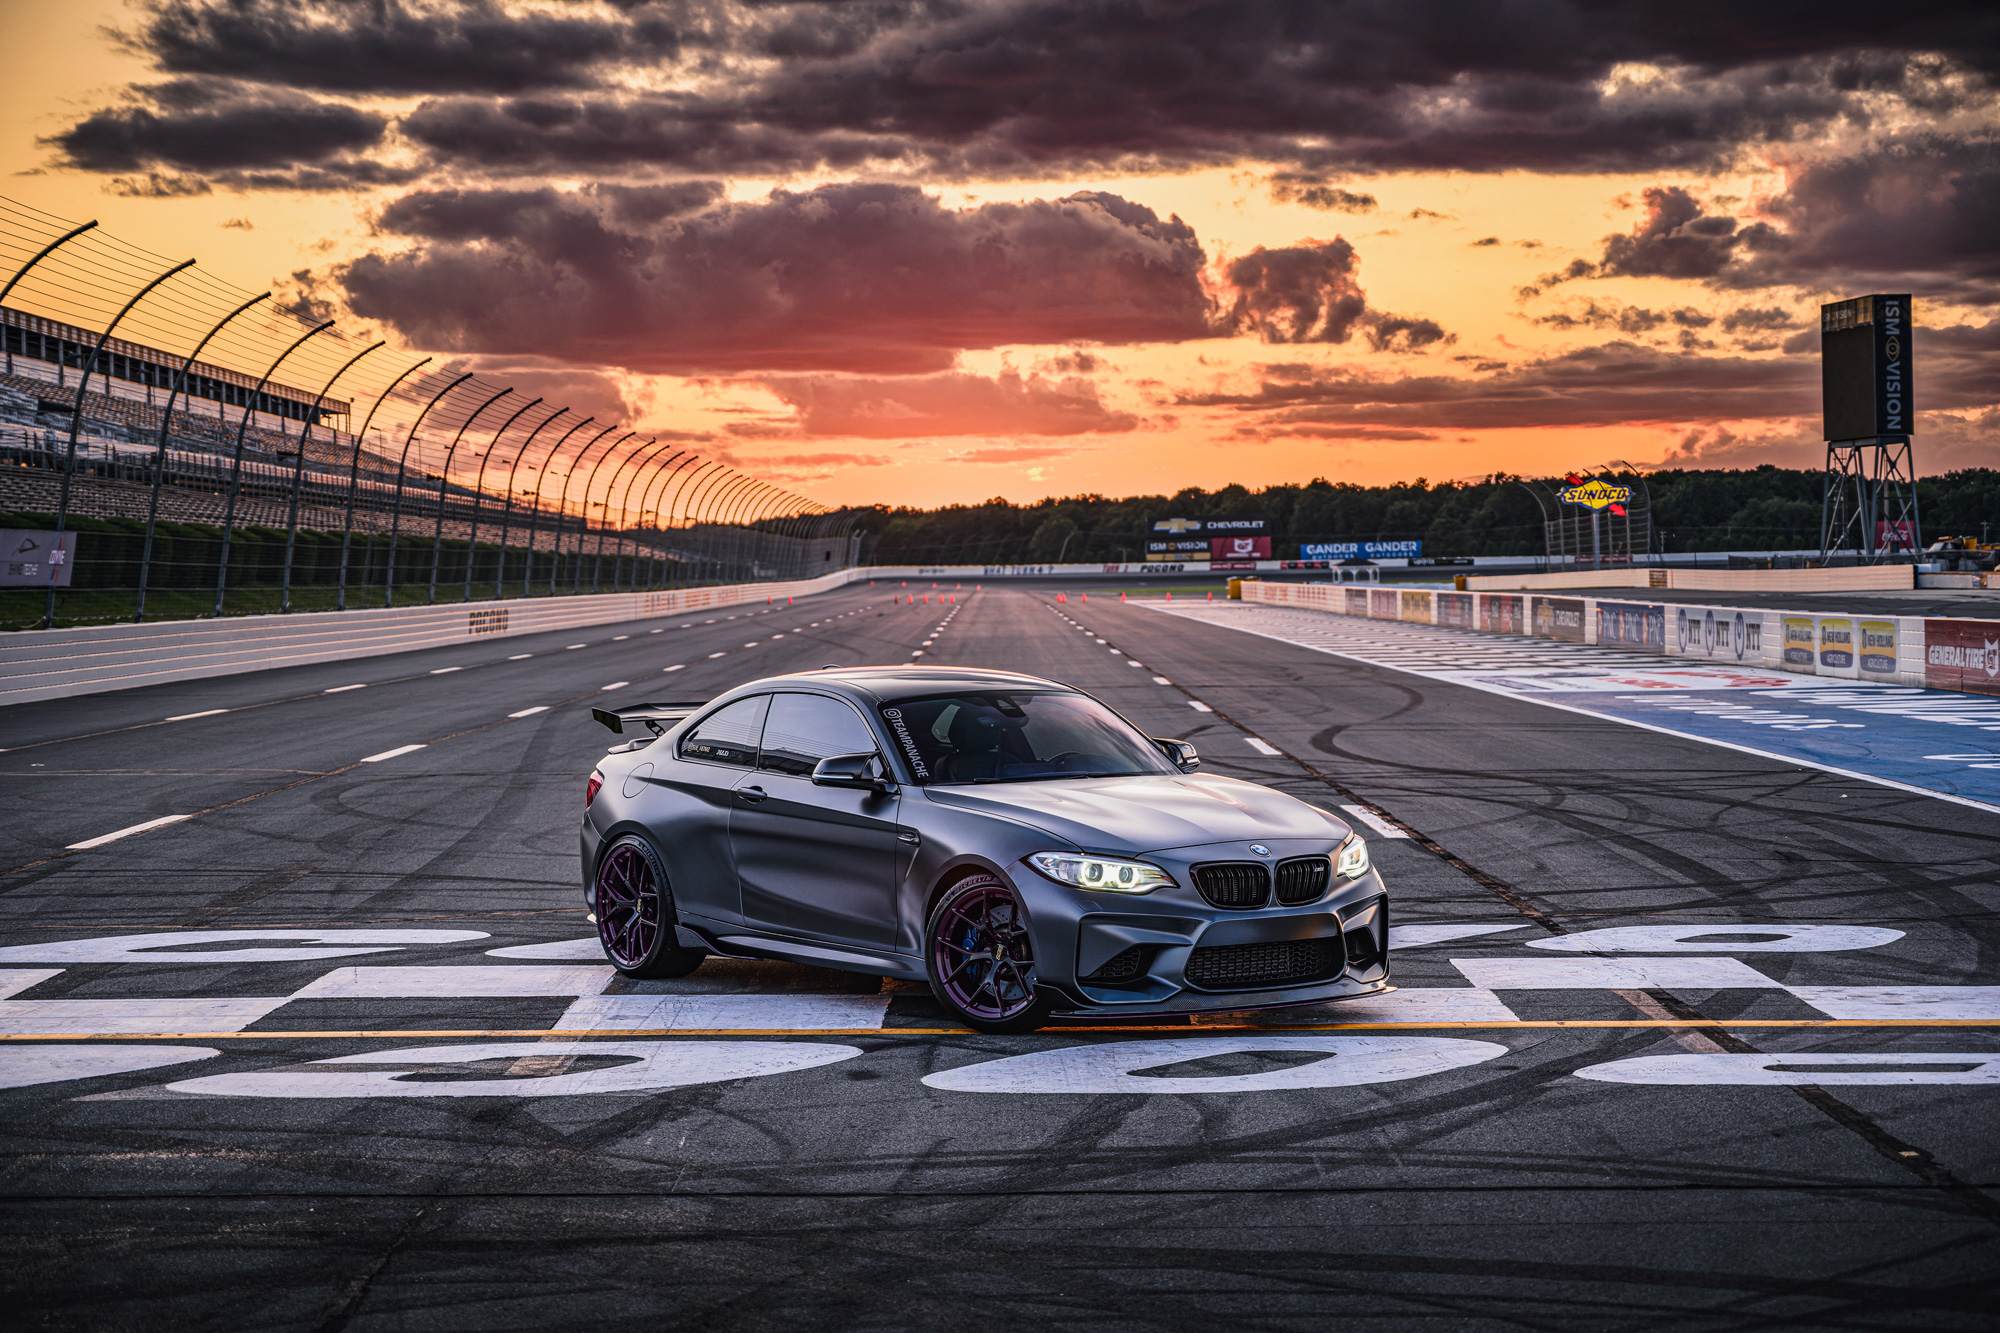 Tutorial: How I shot the BMW M2 at Pocono Raceway